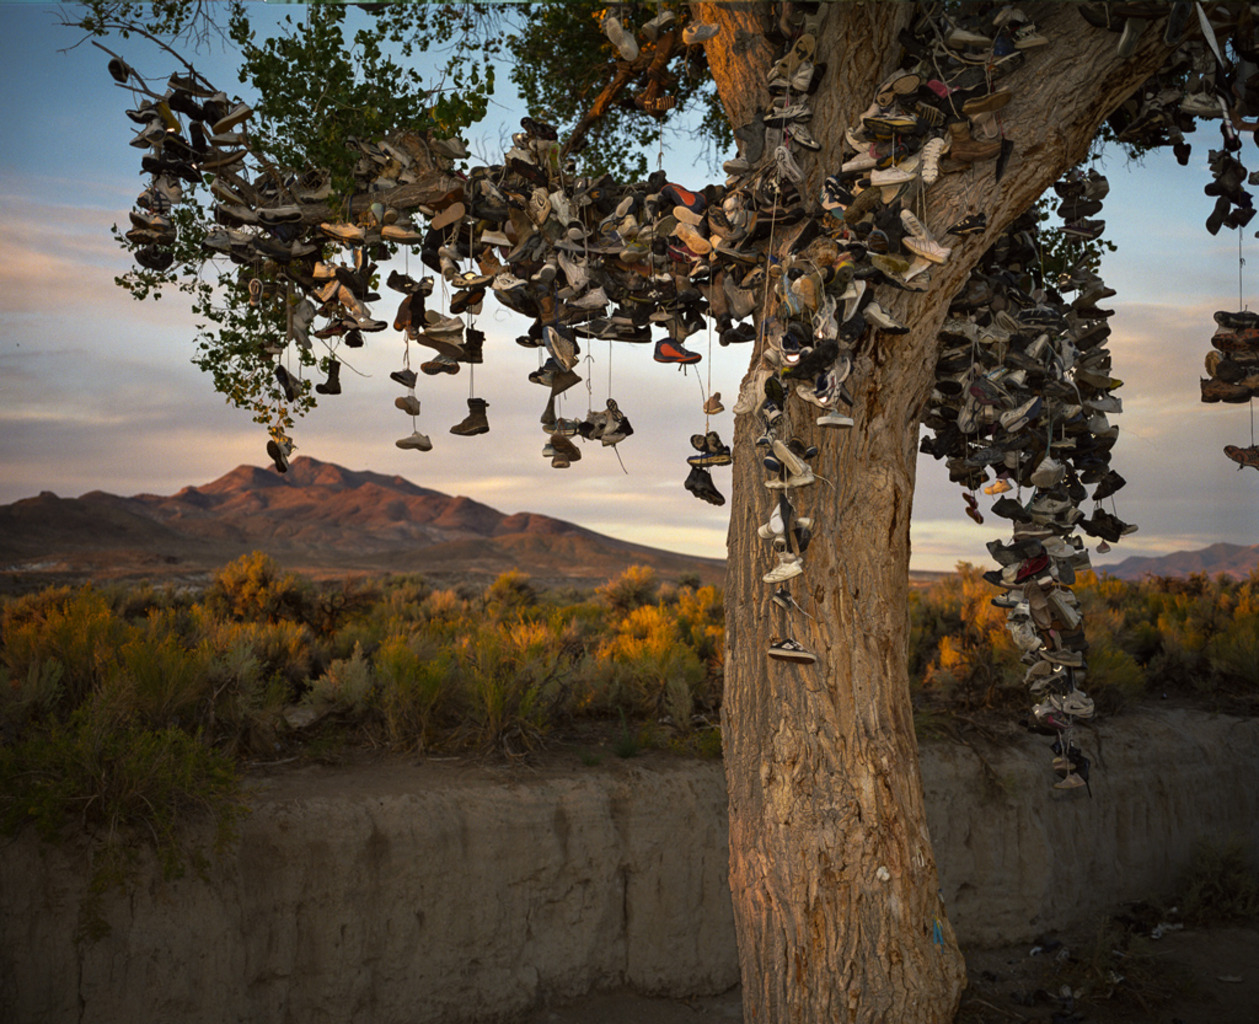 shoe tree US-50, Nevada